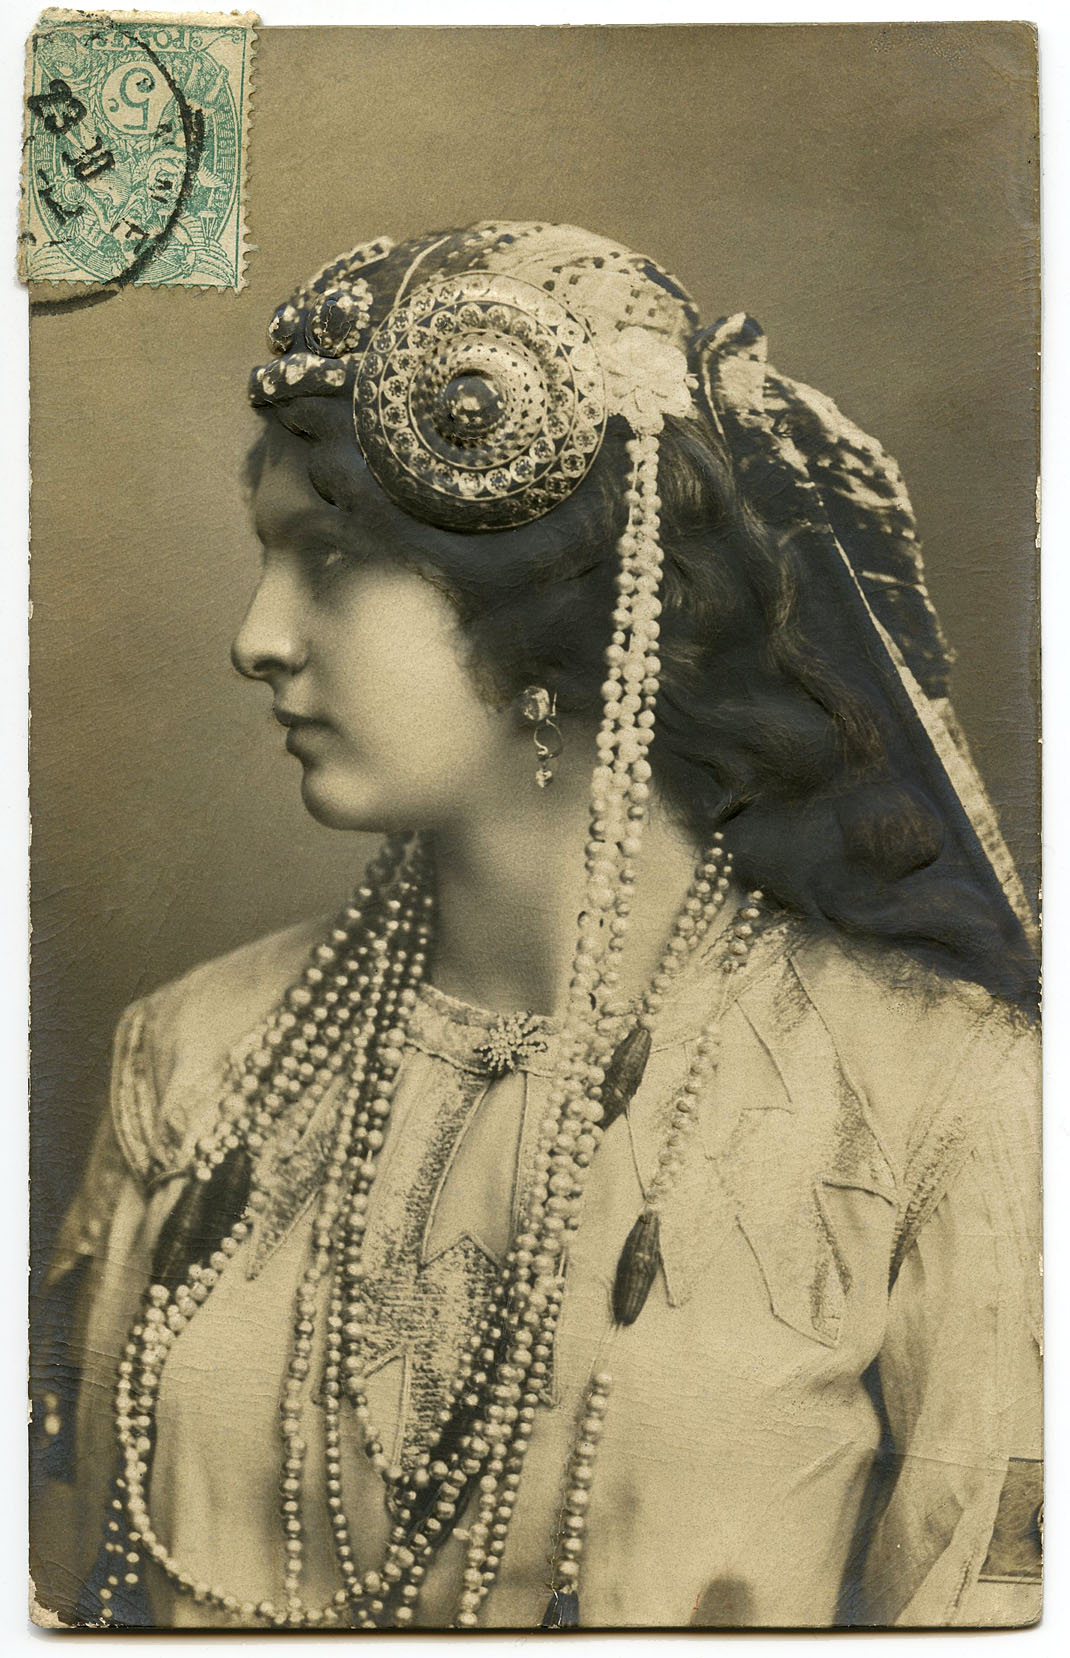 Old Photo Art Nouveau Lady Jewelry